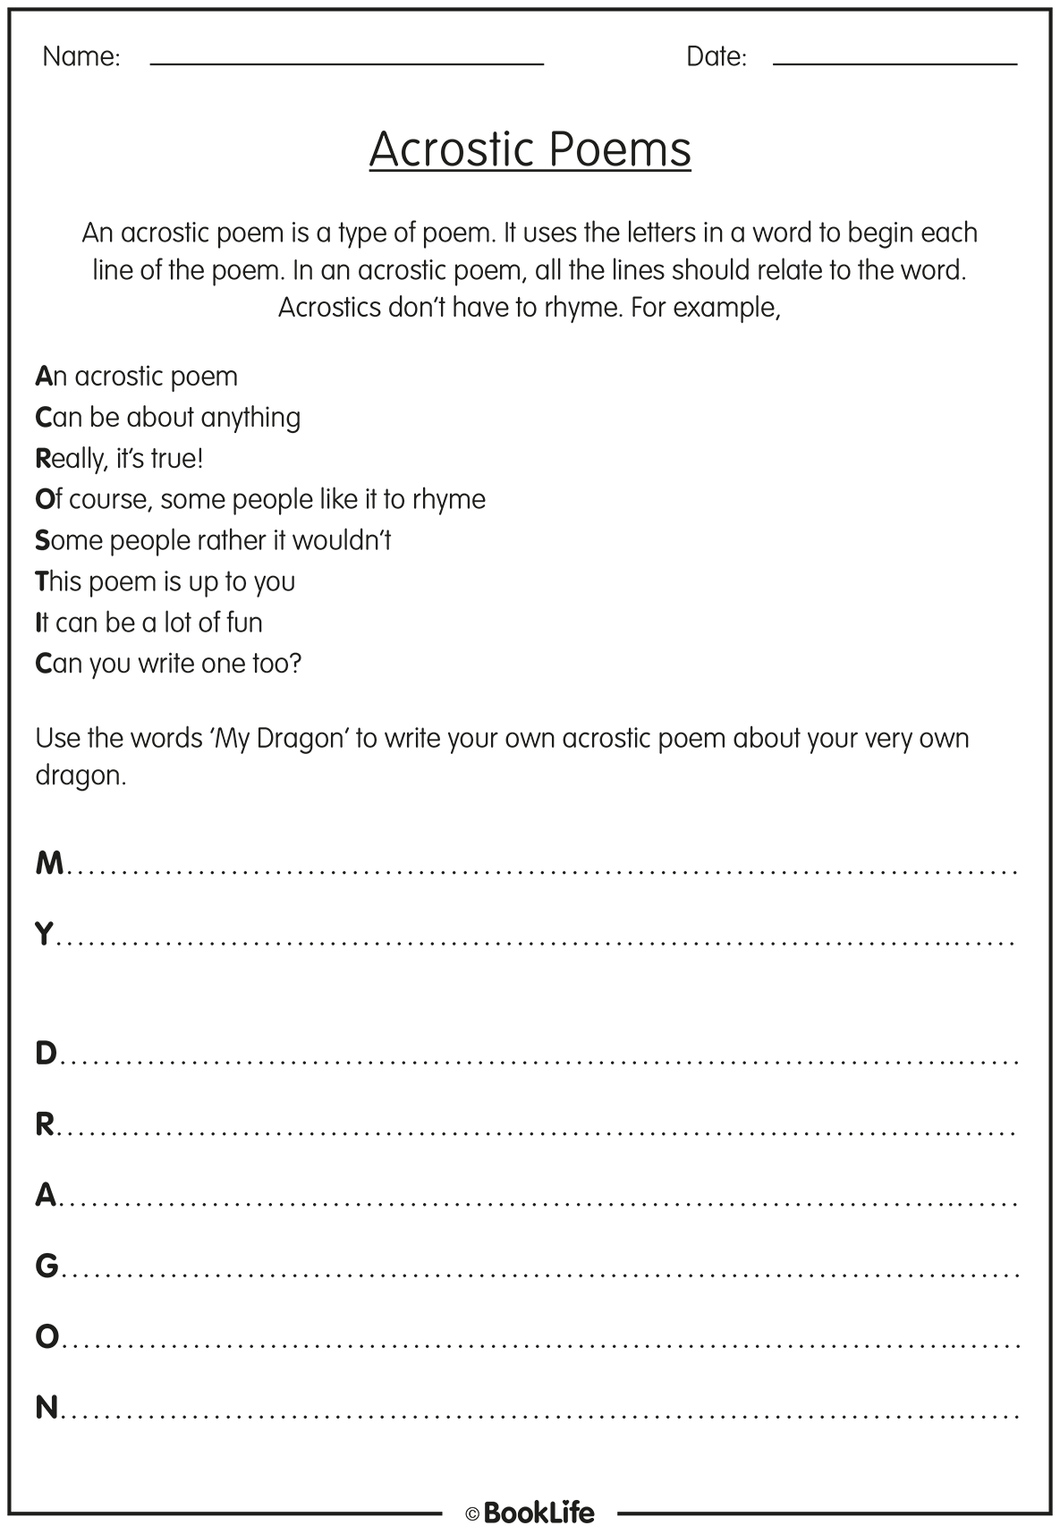 Free Acrostic Poems